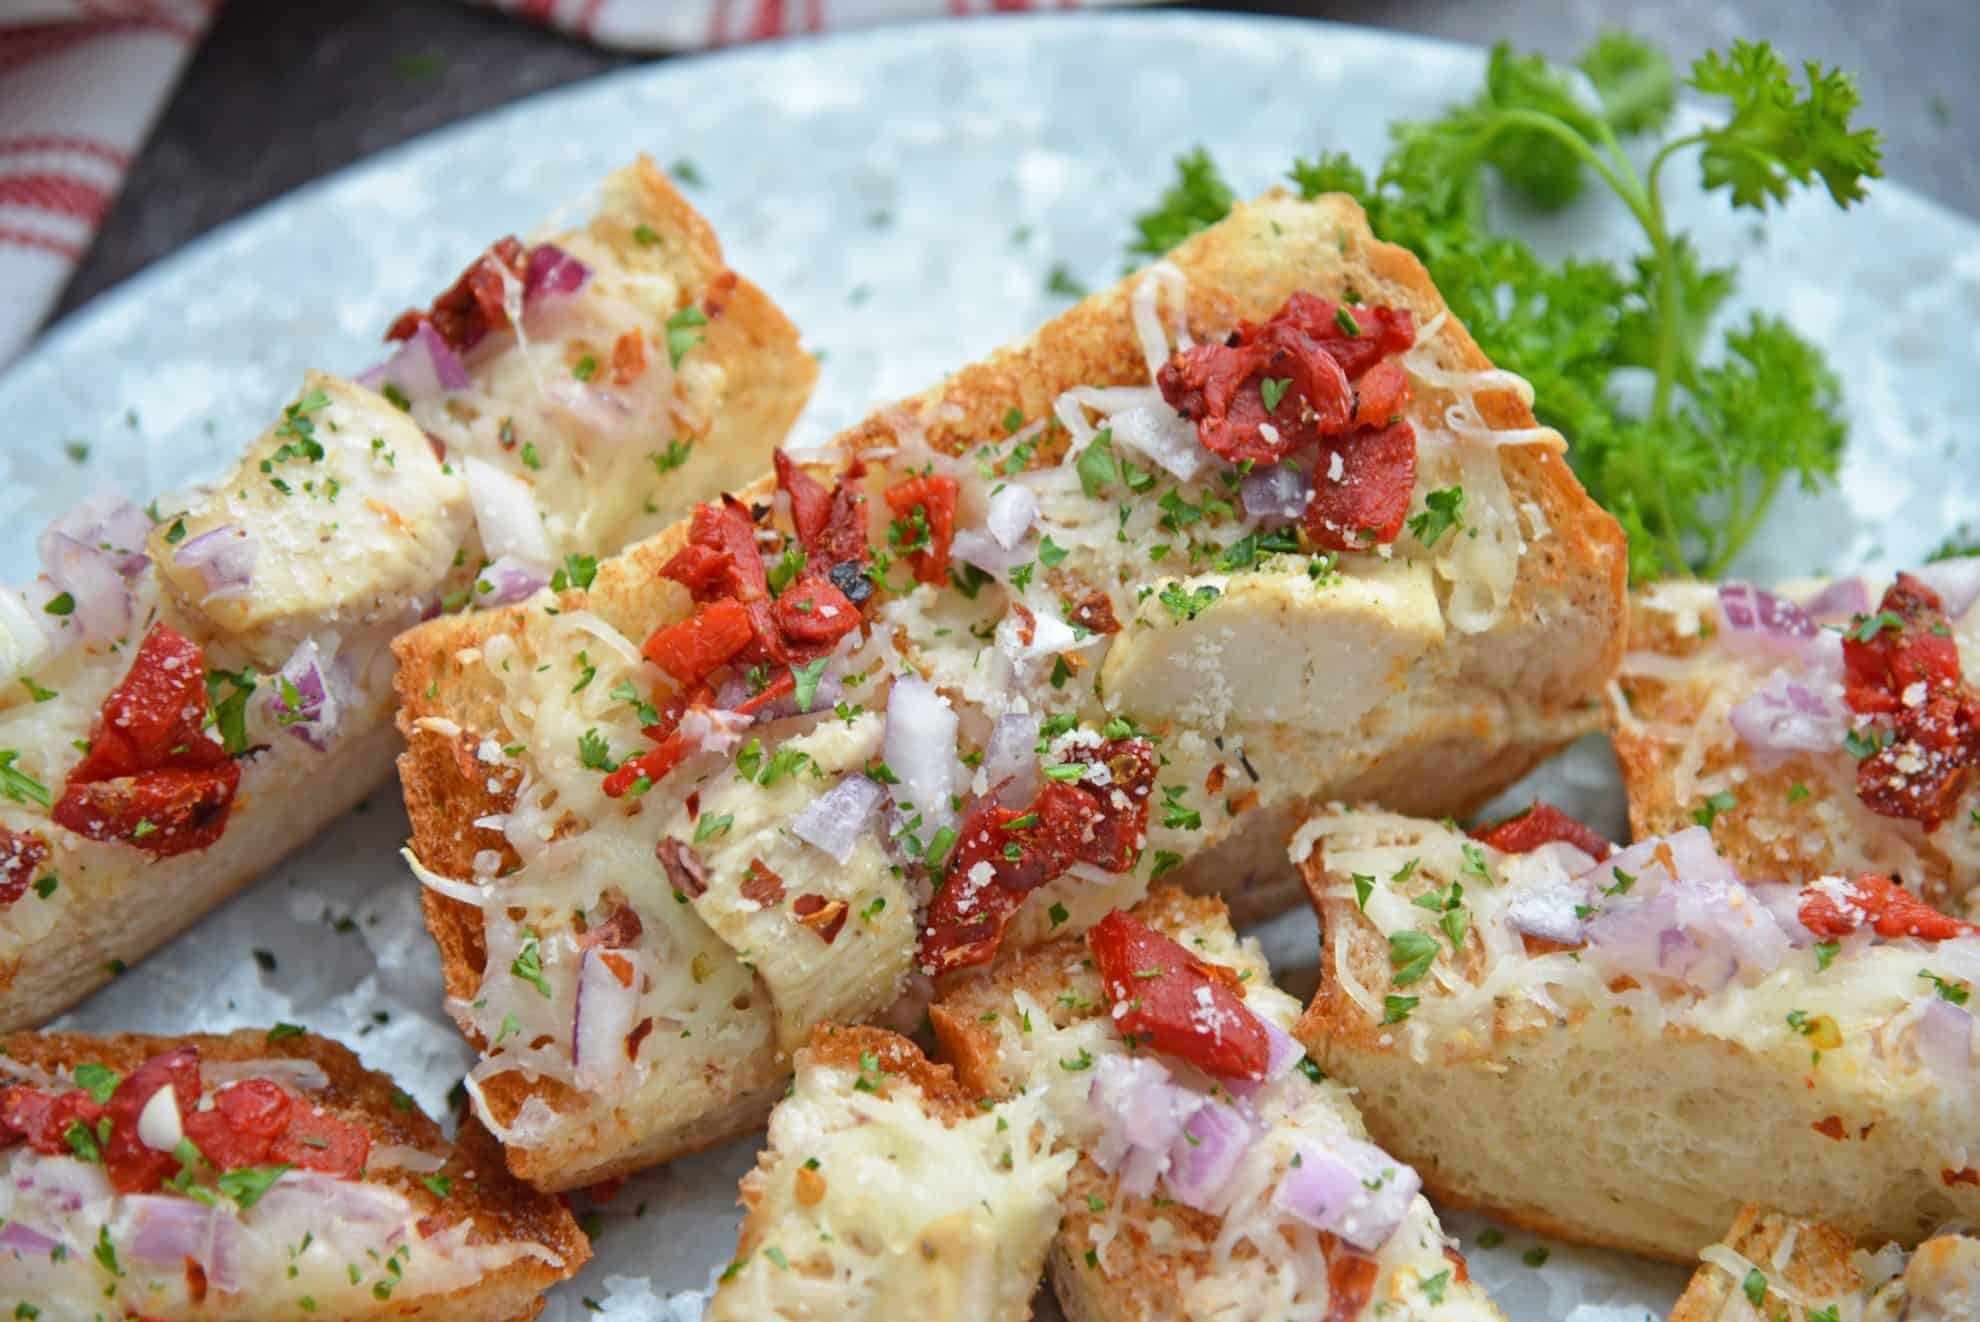 Close up of french bread pizza